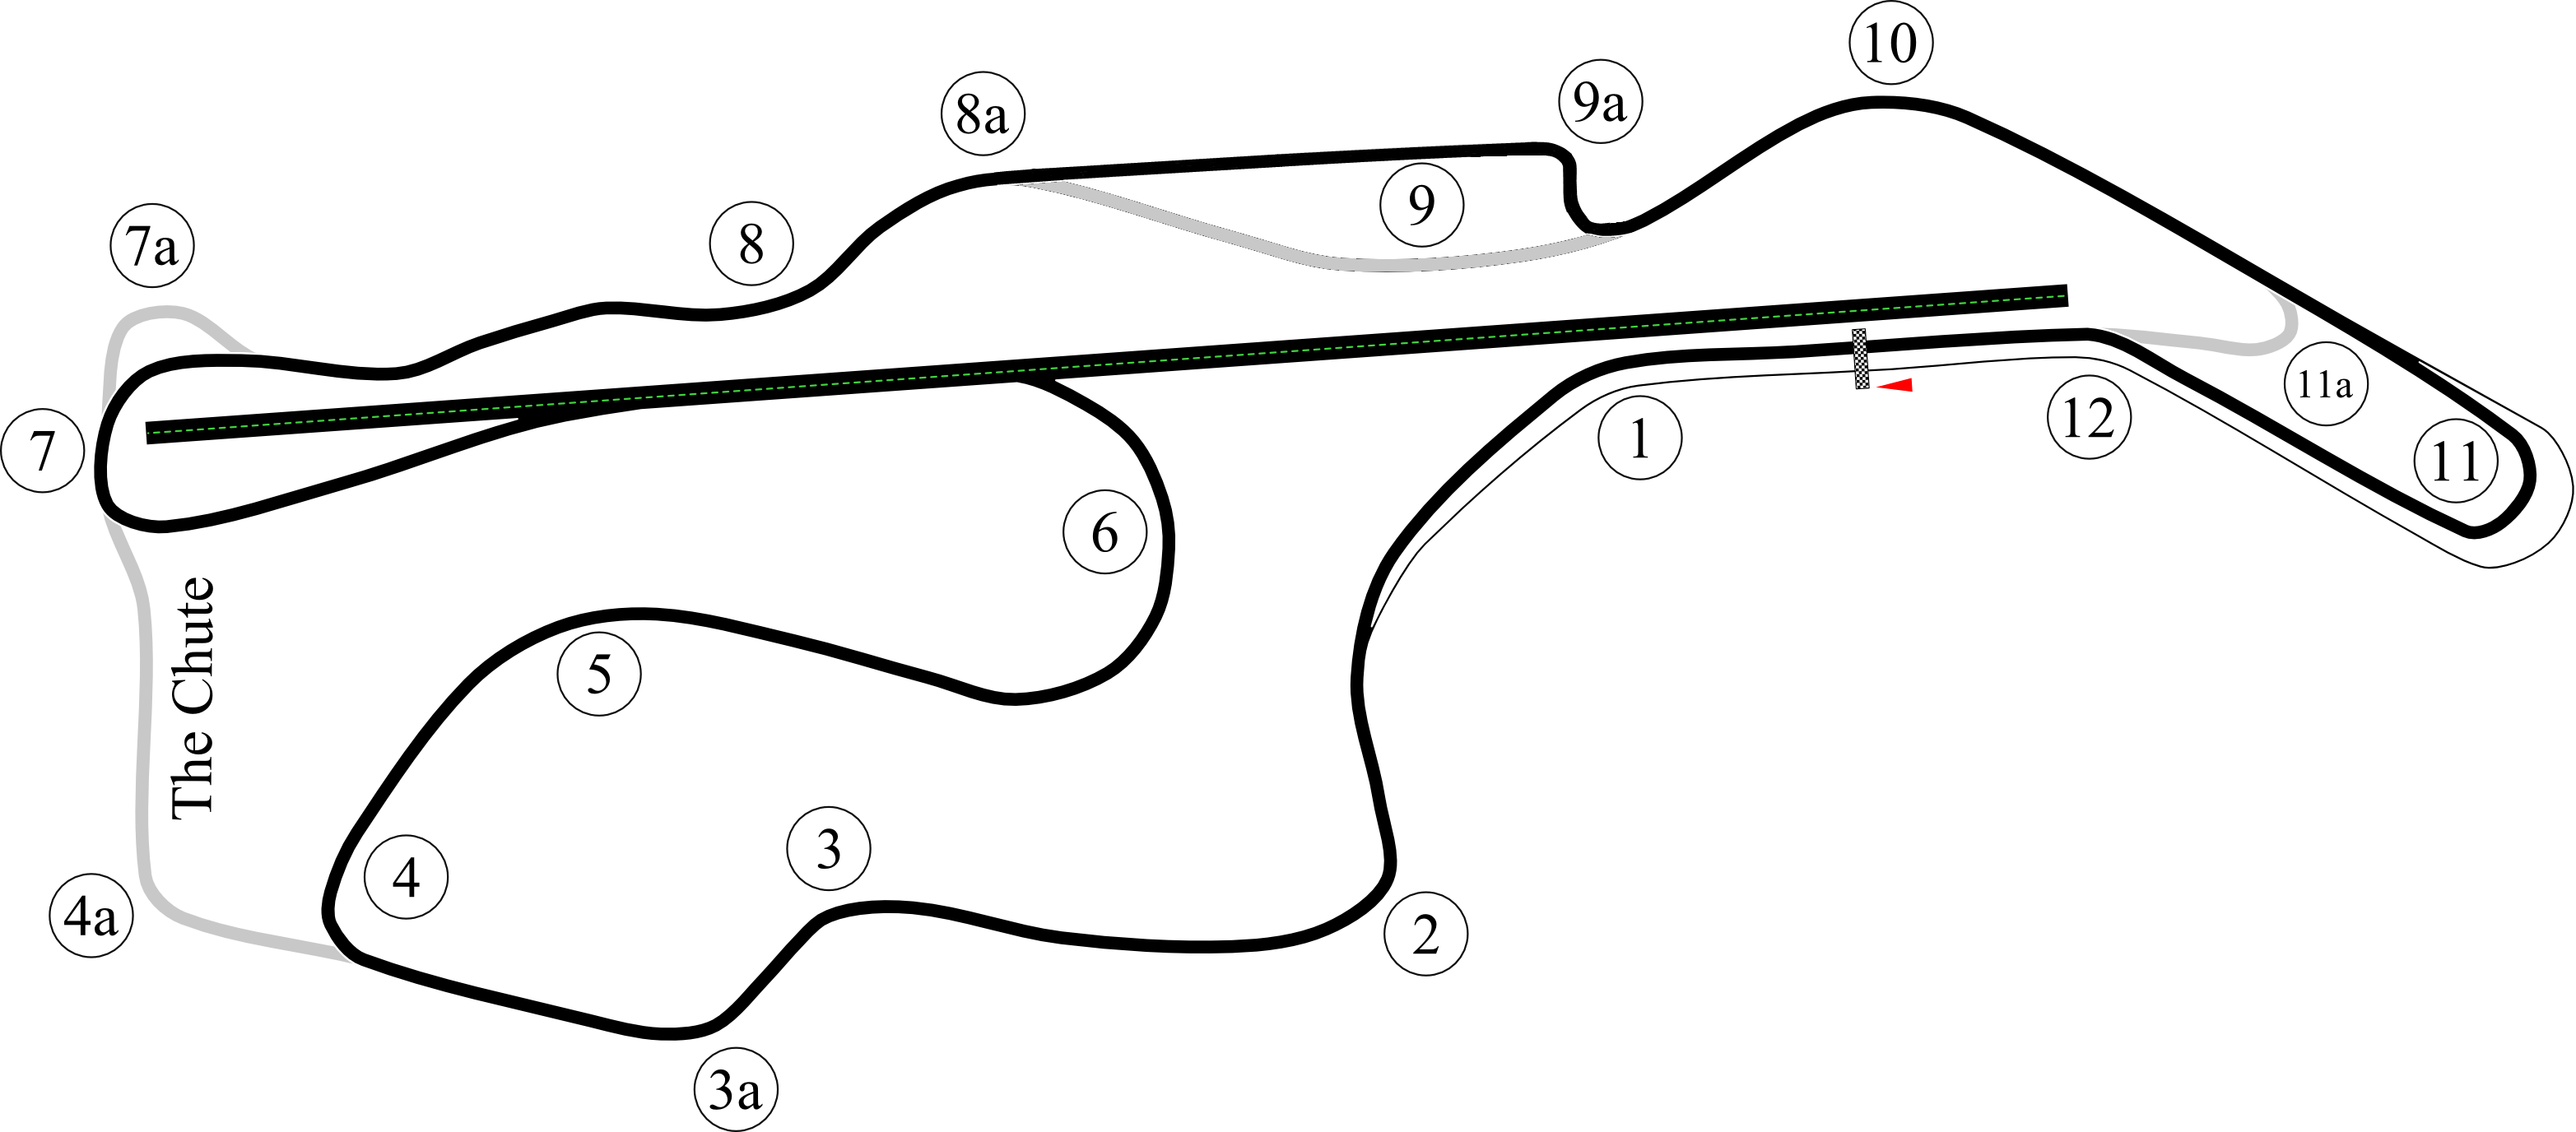 Slot Car Track Plans together with Sonoma Raceway likewise Index as well  in addition Texas World Speedway. on nascar track layouts